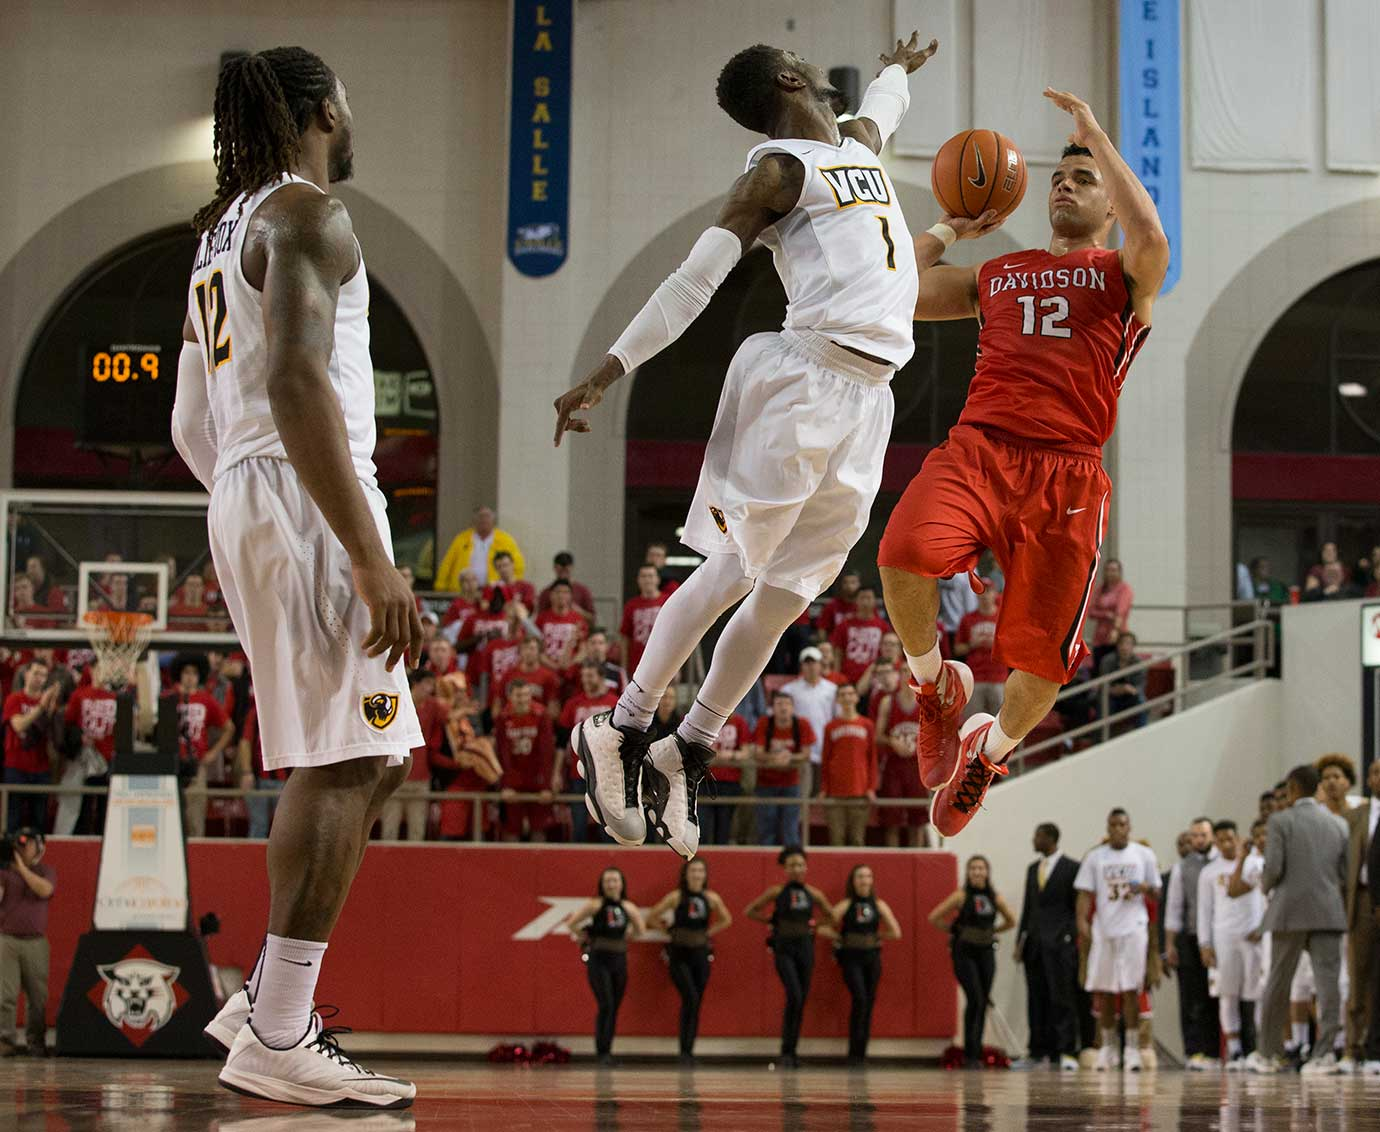 Davidson Wildcats guard Jack Gibbs tries for a three while facing Virginia Commonwealth University in Davidson, N.C.